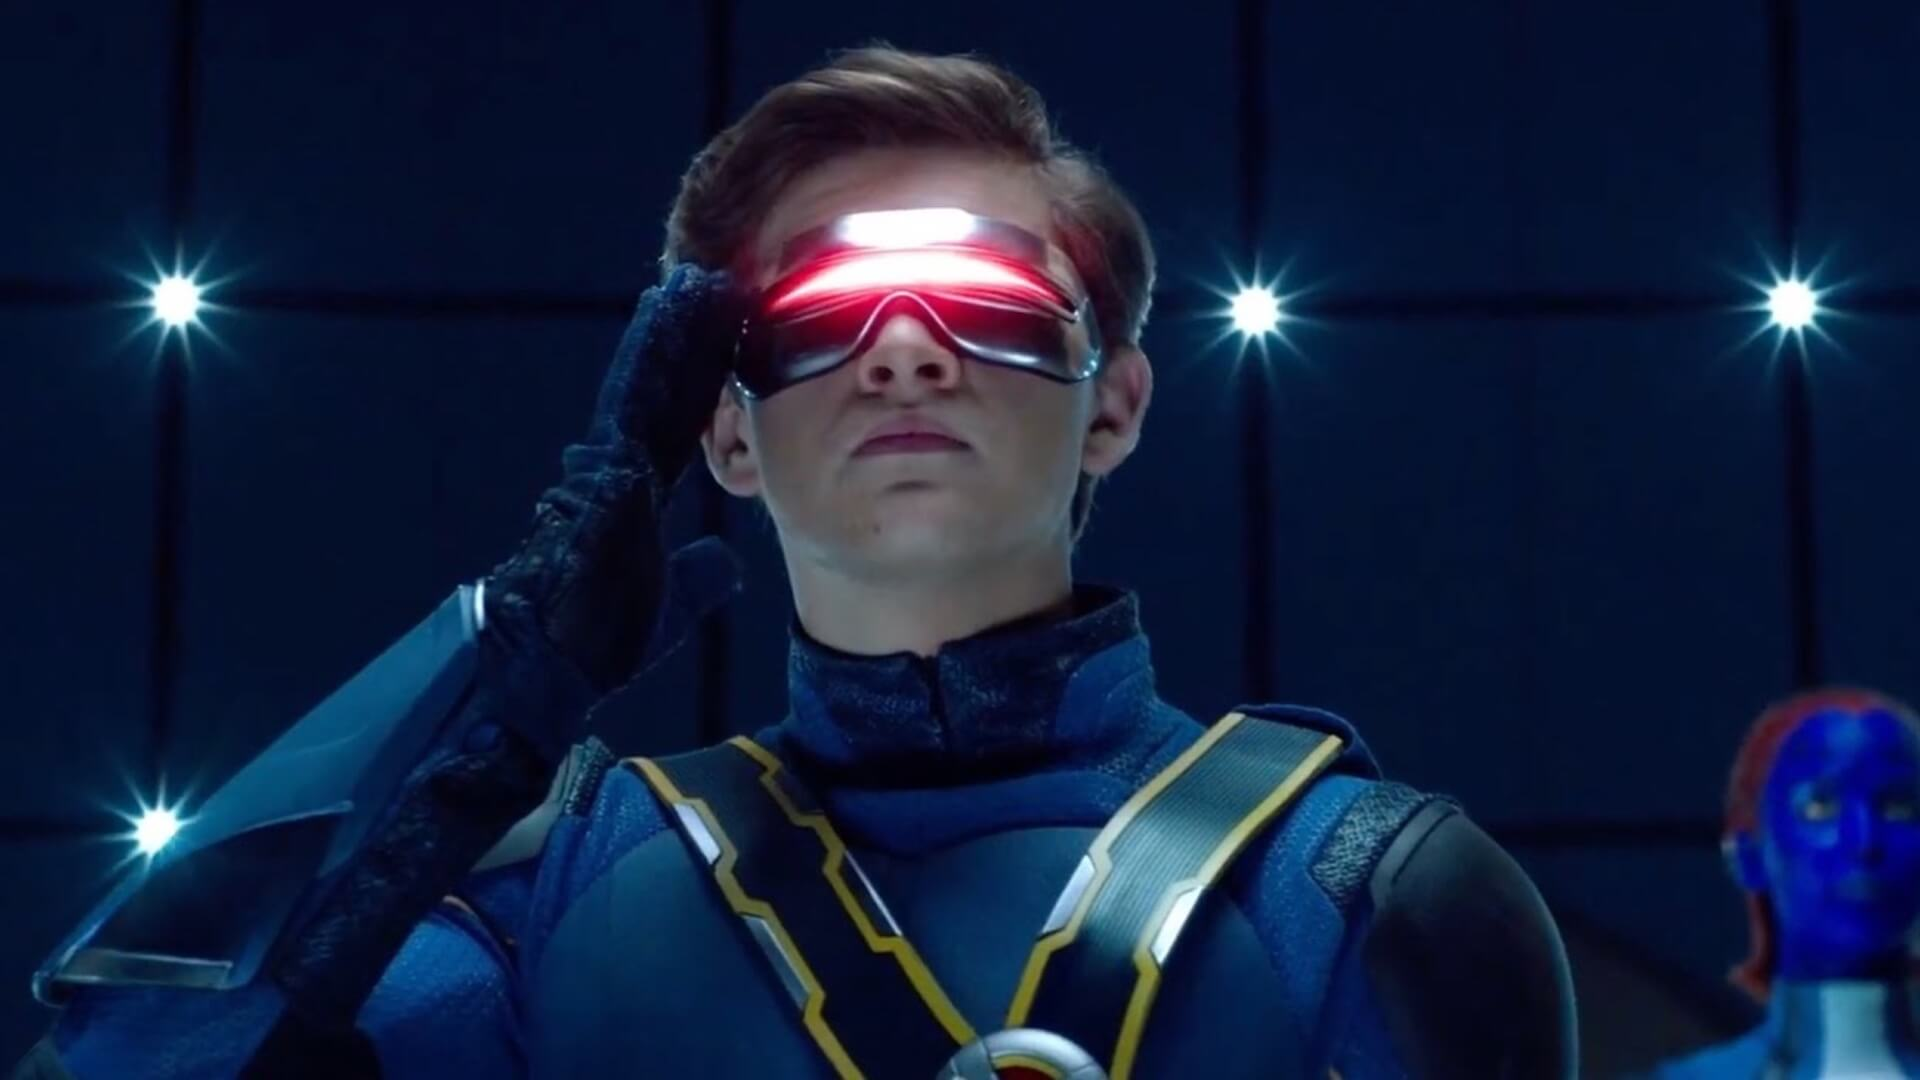 Sheridan as Scott Summers/Cyclops in X-Men Dark Phoenix